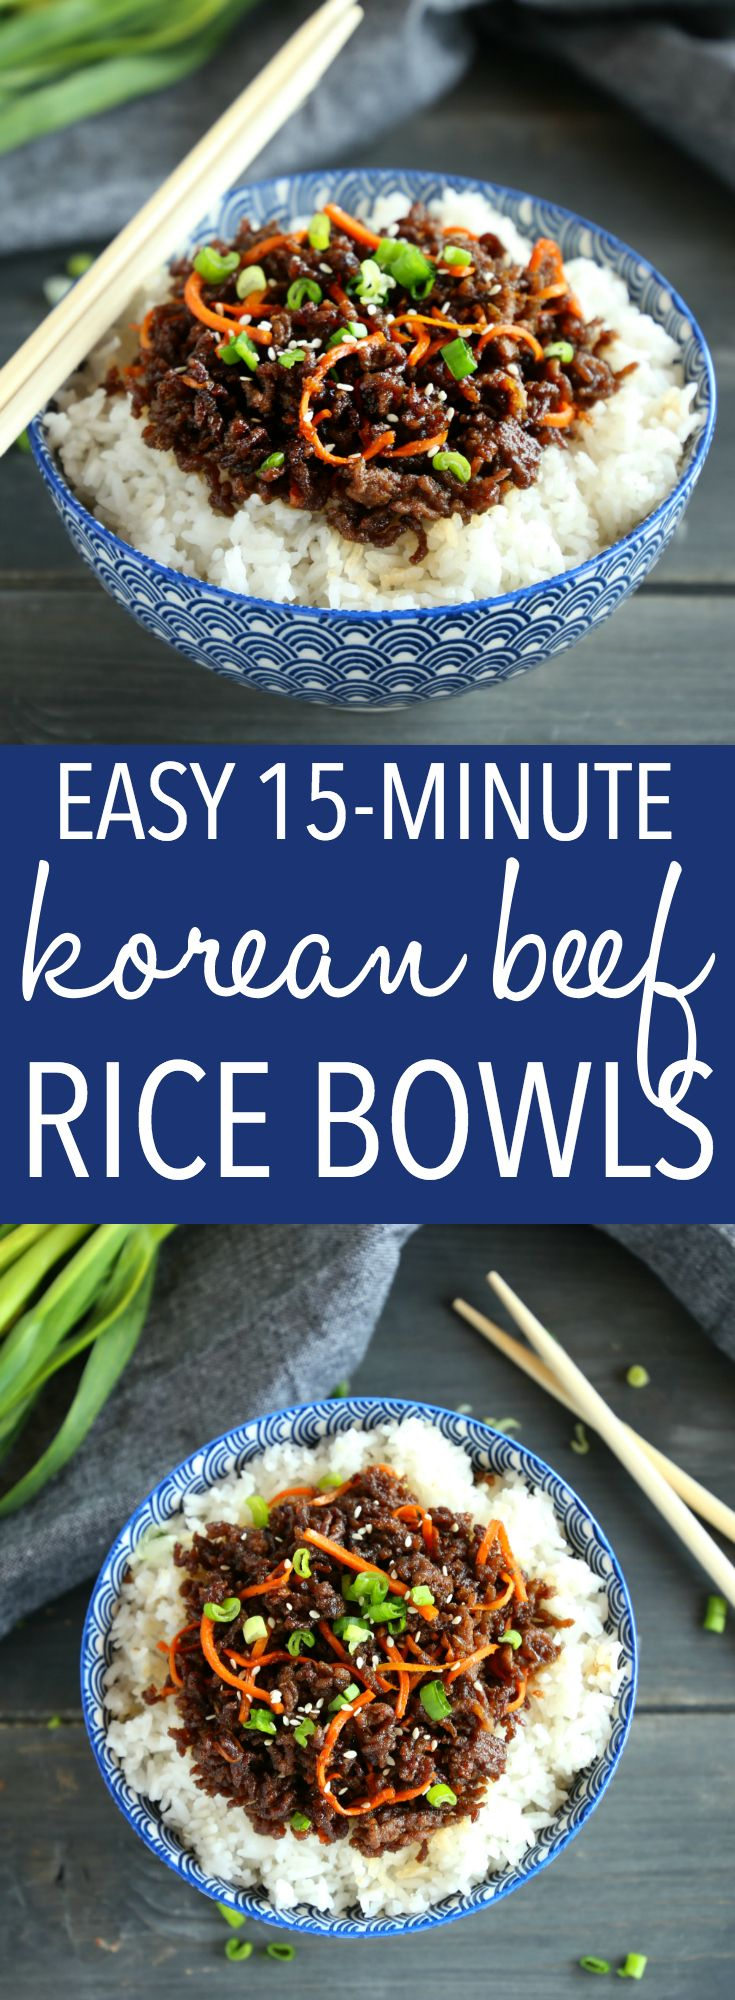 Easy Korean Beef Rice Bowls {15 Minute Meal} - The Busy Baker